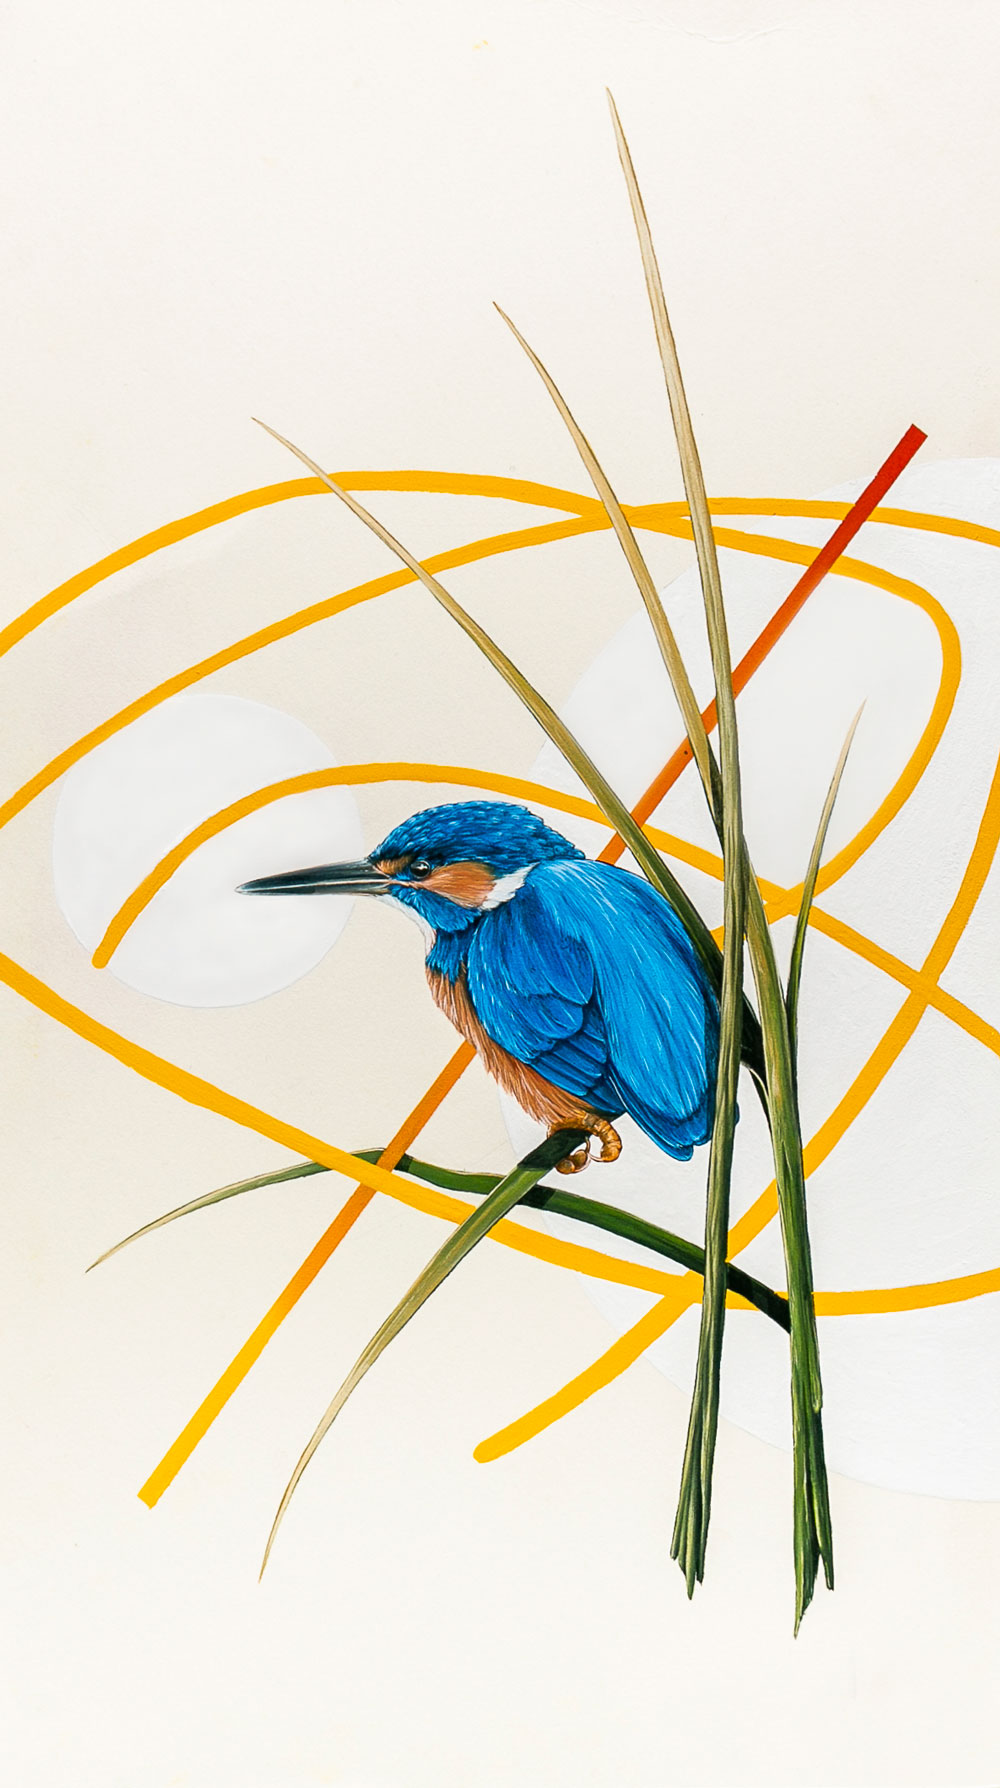 Kingfisher, Avon River, England. A part of the 'Discovery' series of works.